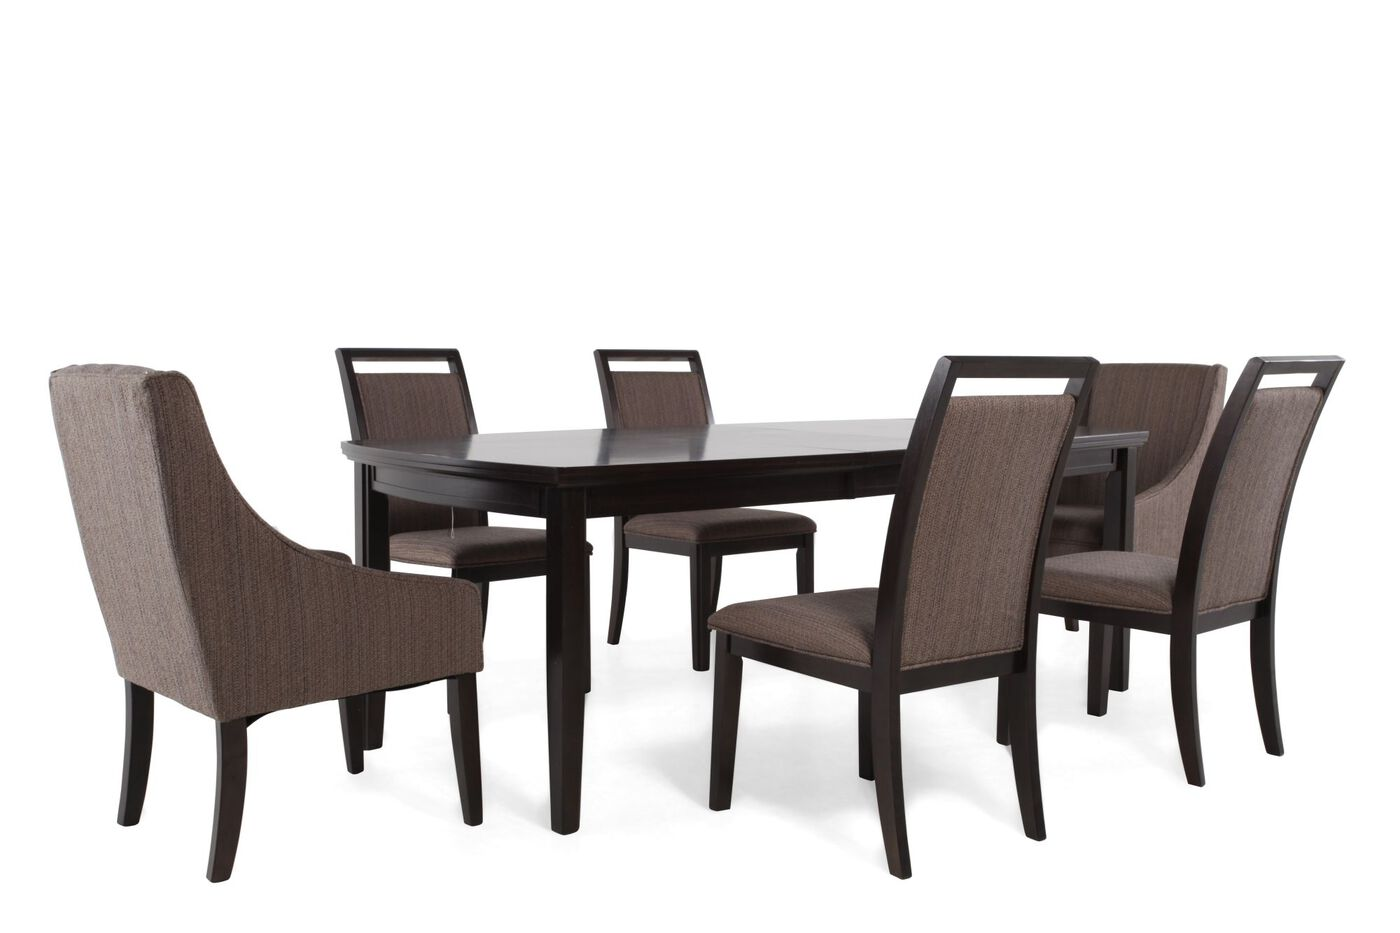 Ashley Lanquist Seven Piece Dining Set Mathis Brothers Furniture